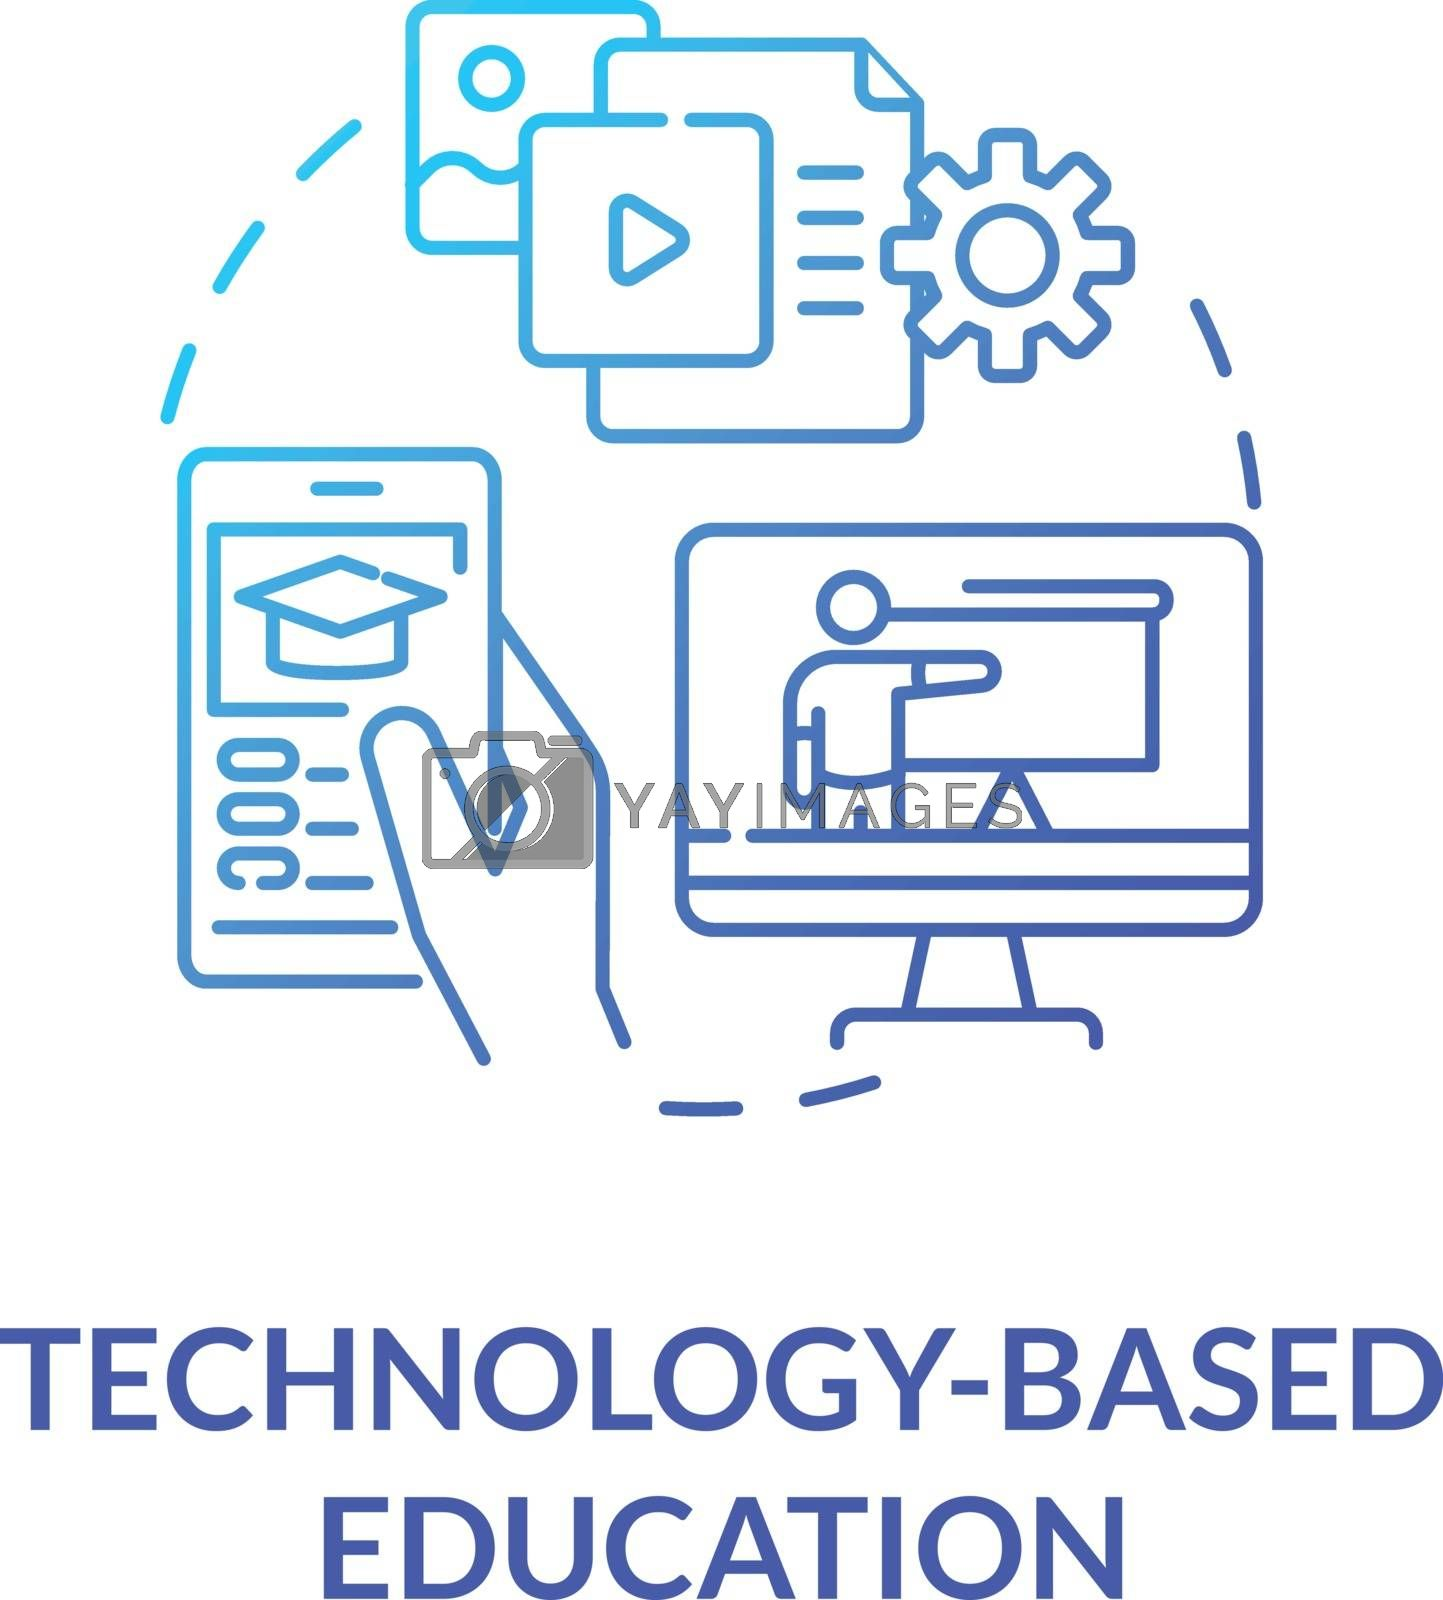 Technology based education concept icon. Mobile and computer learning. Elearning. Webinars. Online education idea thin line illustration. Vector isolated outline RGB color drawing